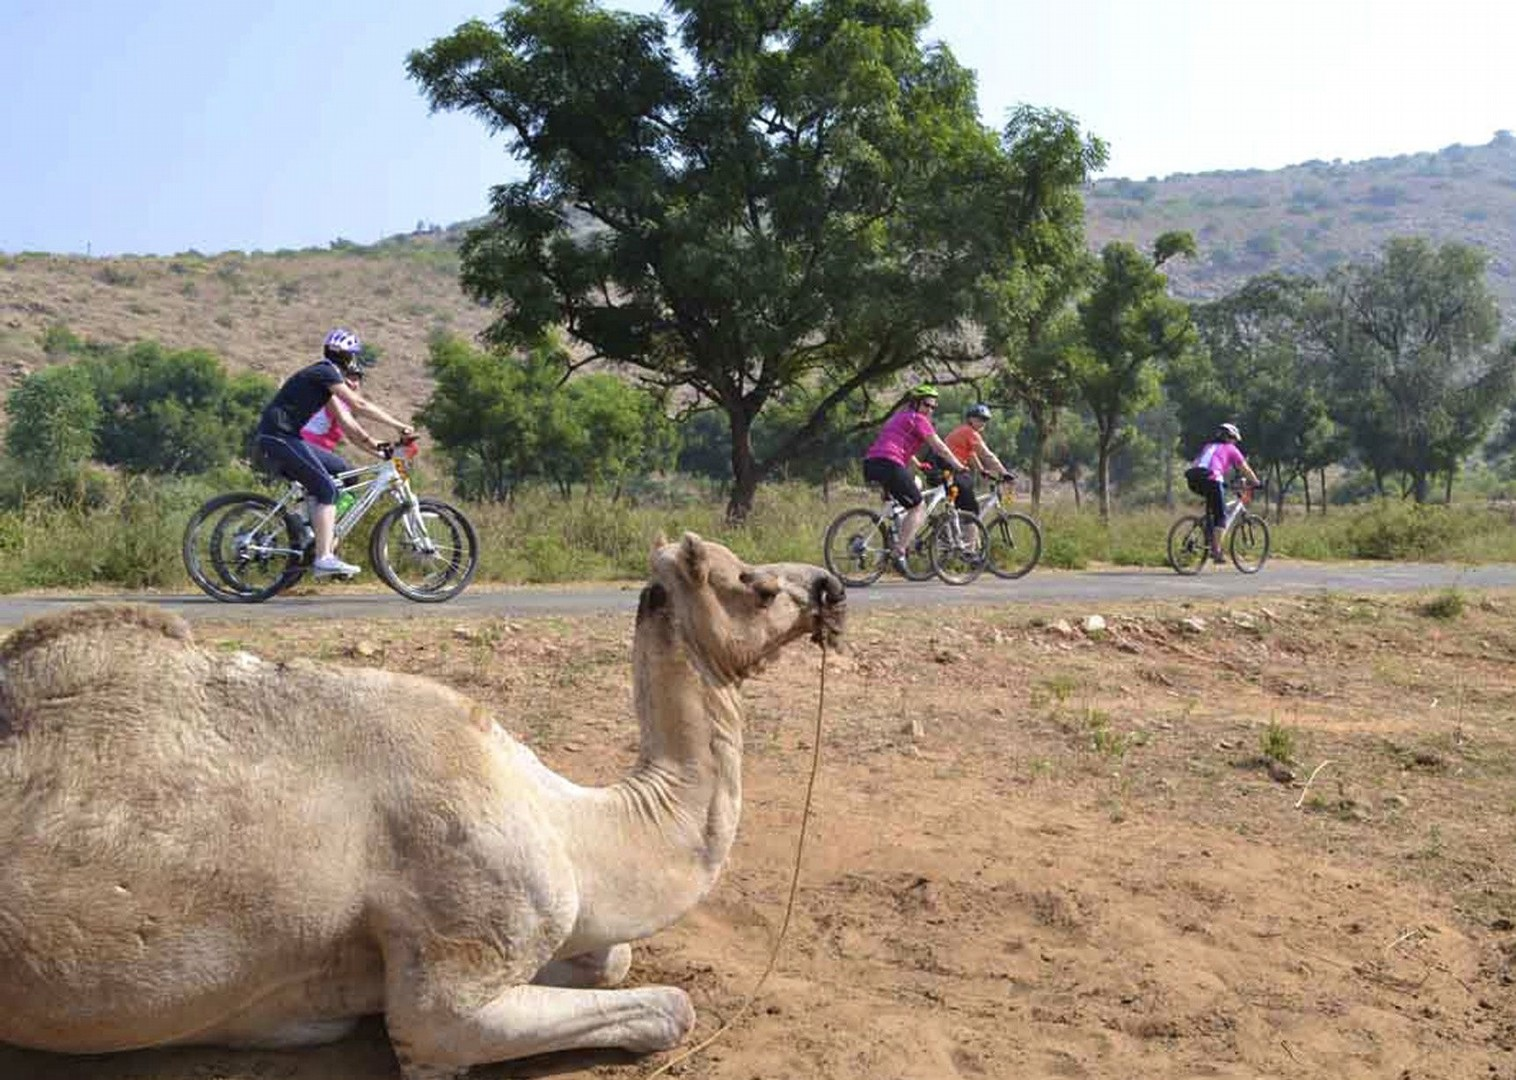 cycling-adventure-holiday-rajasthan-camel.jpg - India - Palaces and Lakes of Rajasthan - Cycling Adventures